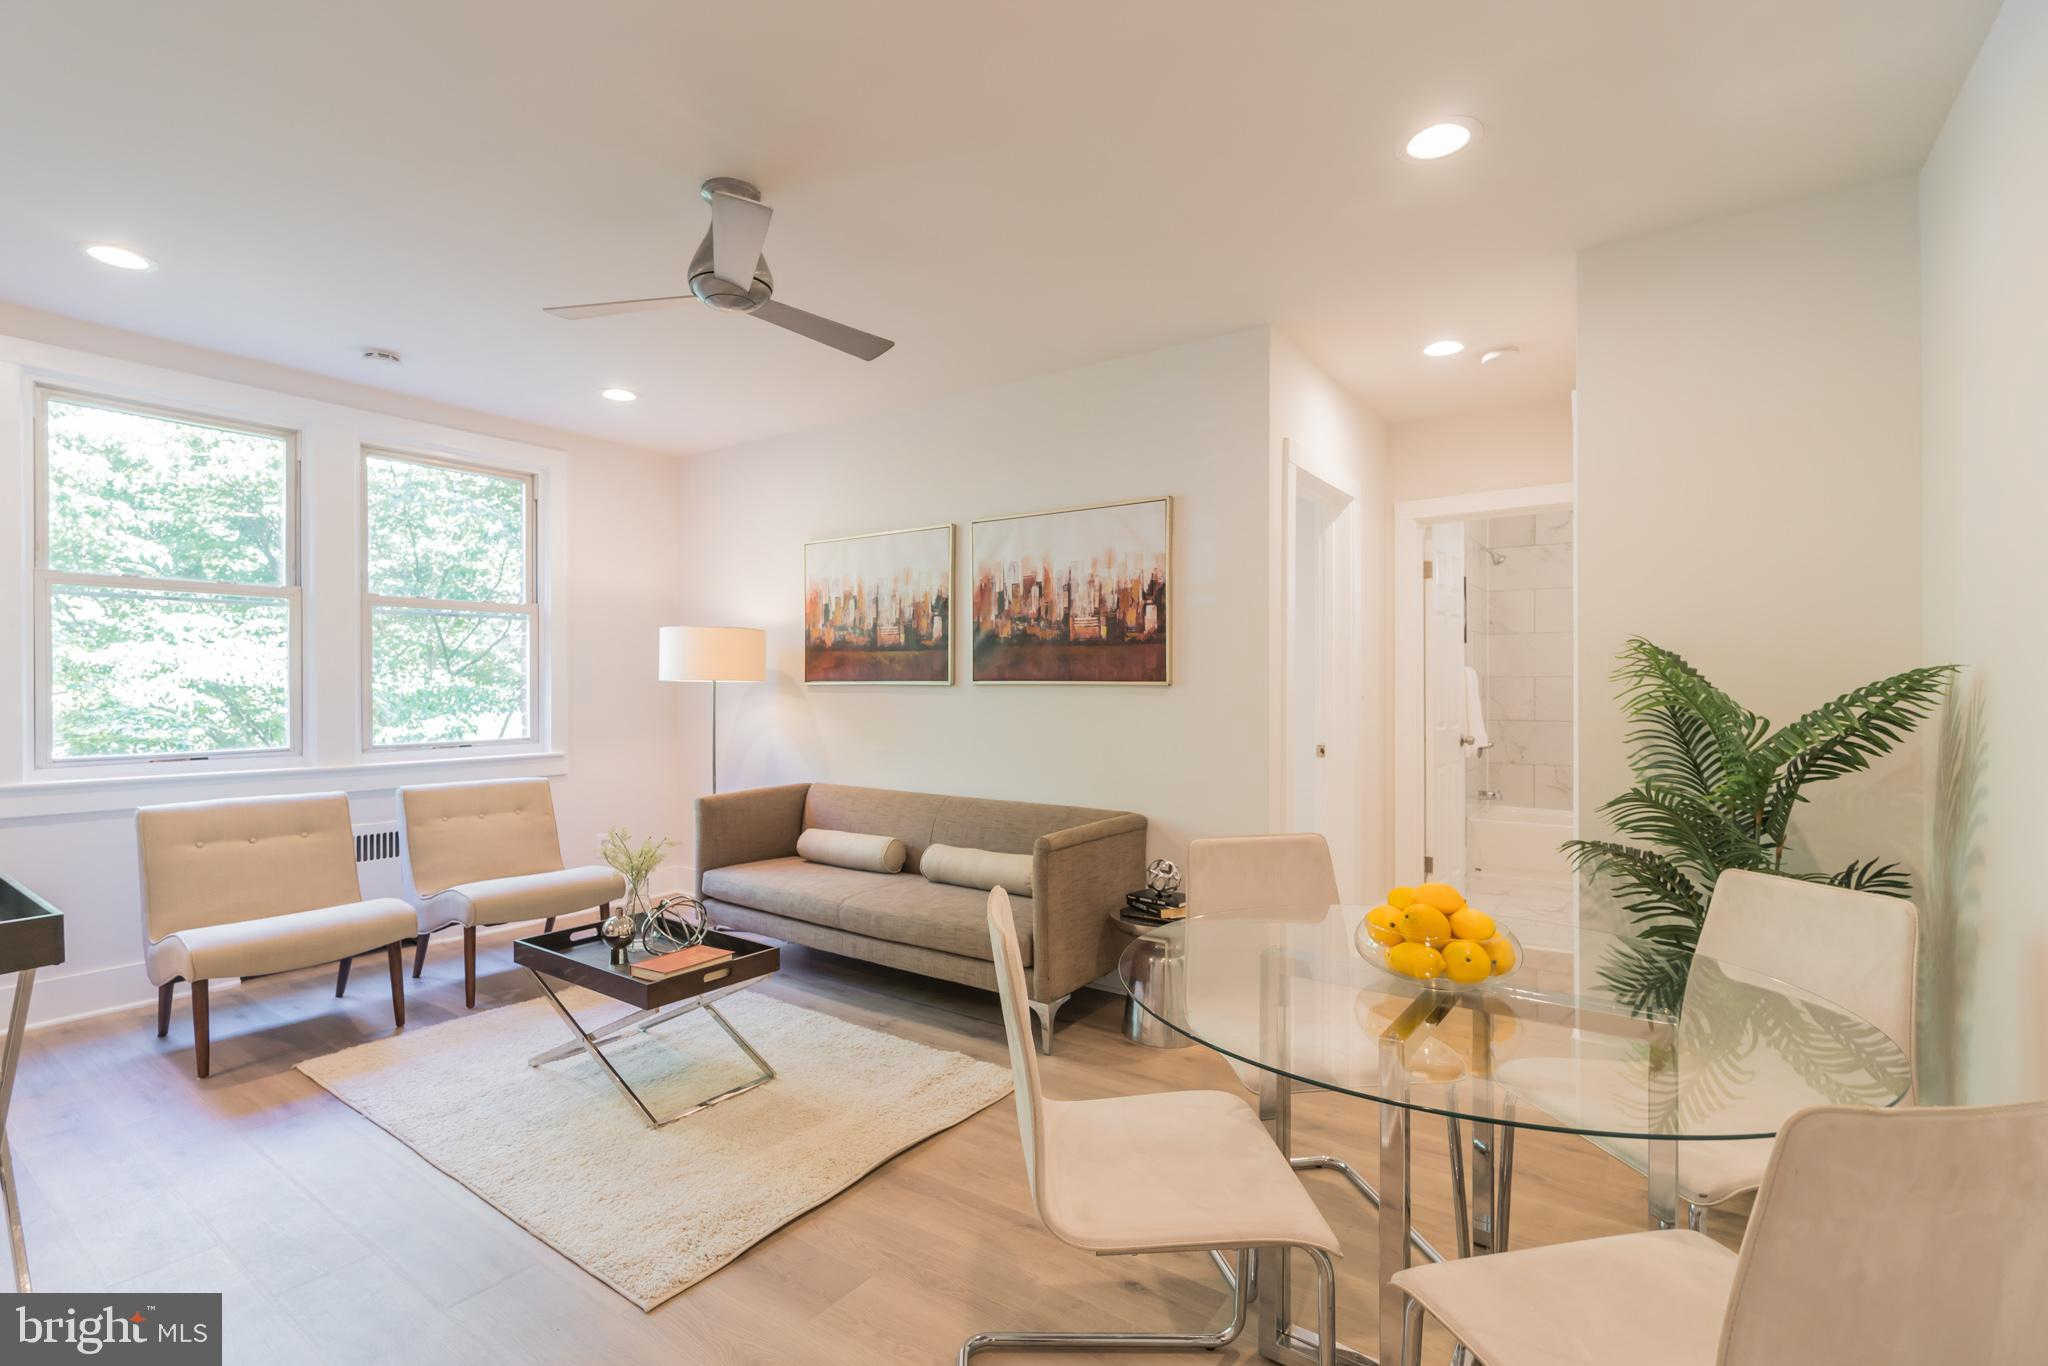 4004 Beecher Street NW #201, Washington, DC 20007 now has a new price of $315,000!